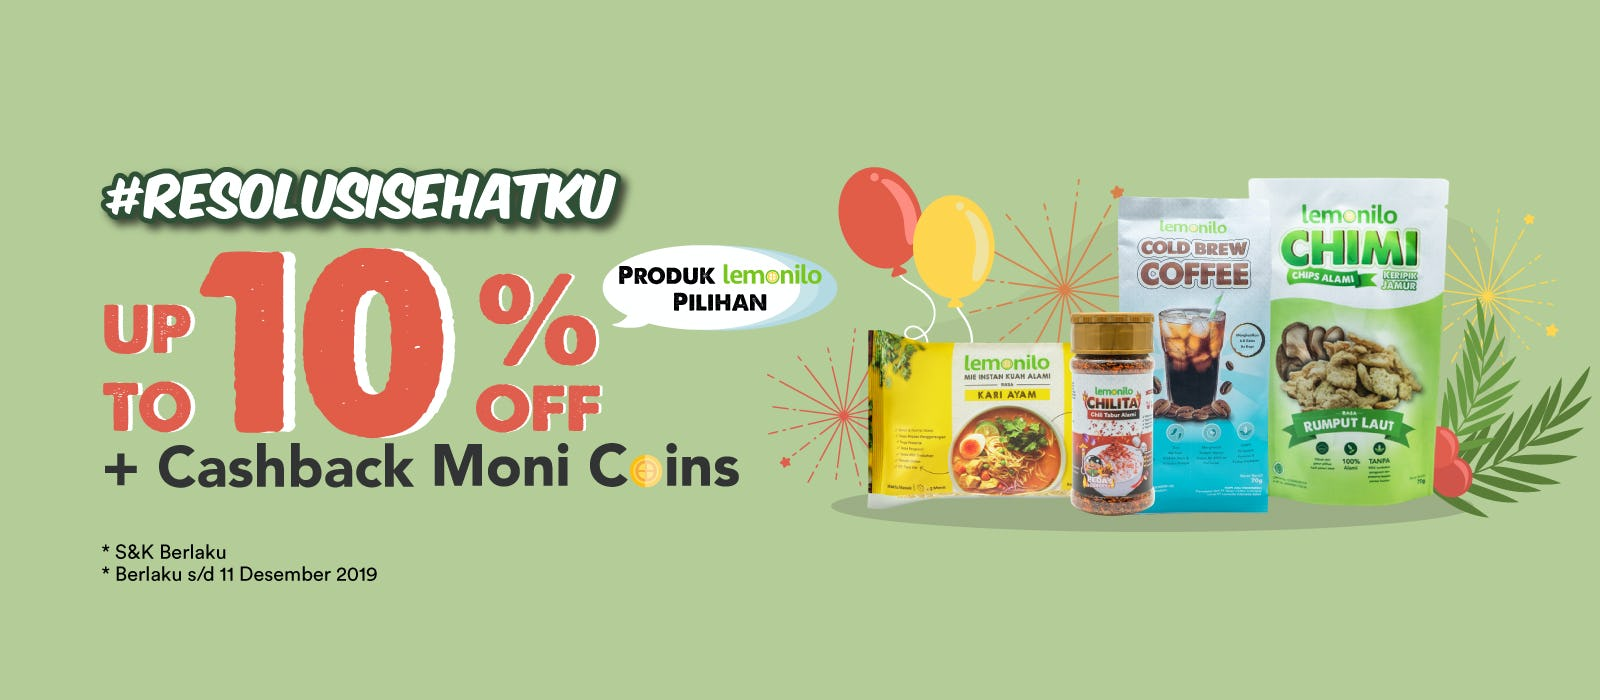 Produk Lemonilo Up To 10% OFF + Cashback